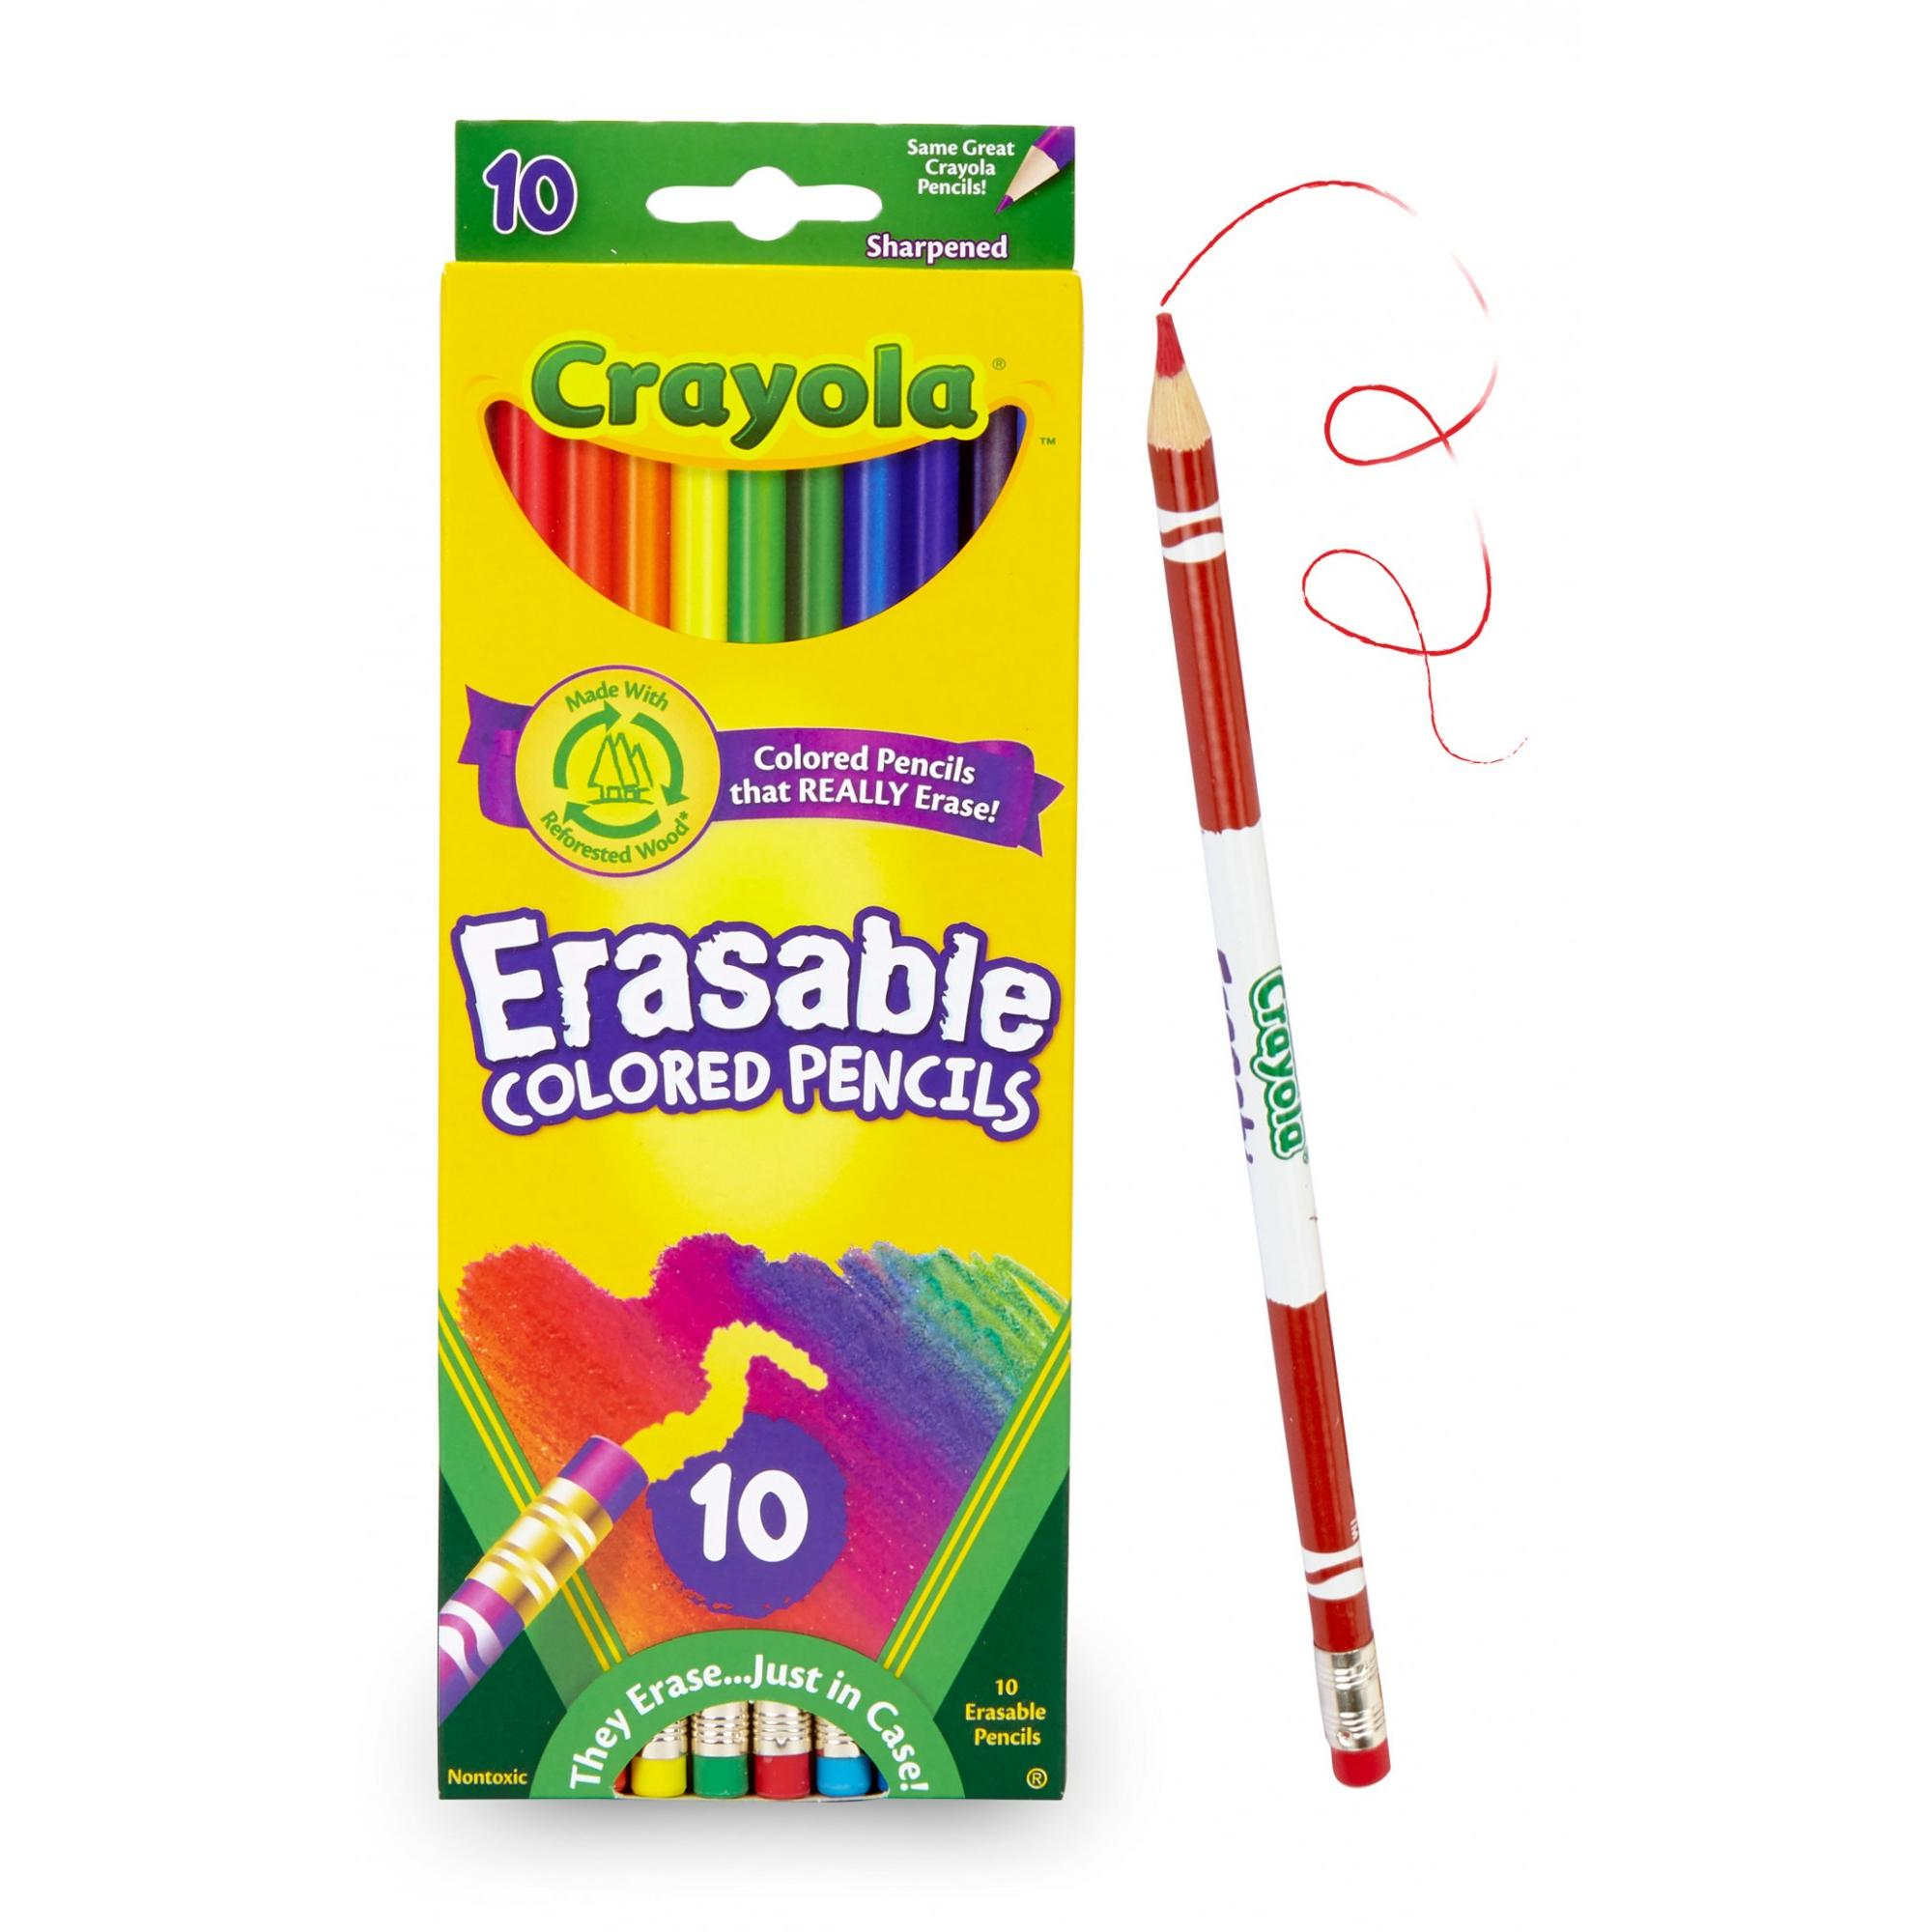 Crayola Erasable Colored Pencils, Great For Coloring Books, 10 Count ...